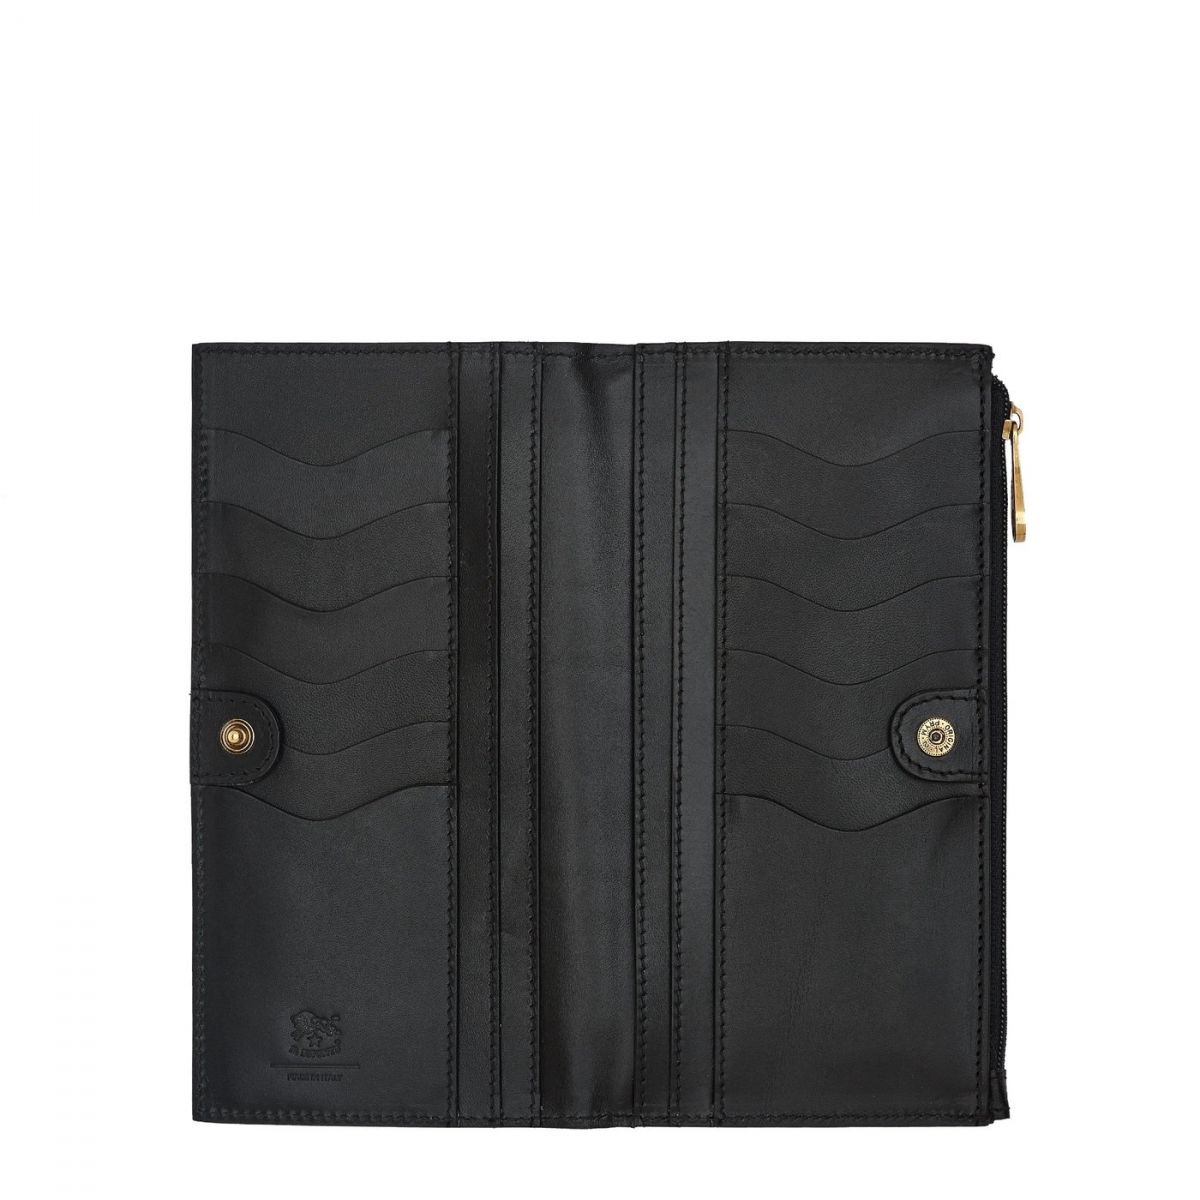 Women's Continental Wallet Giulia in Cowhide Leather SCW068 color Black | Details